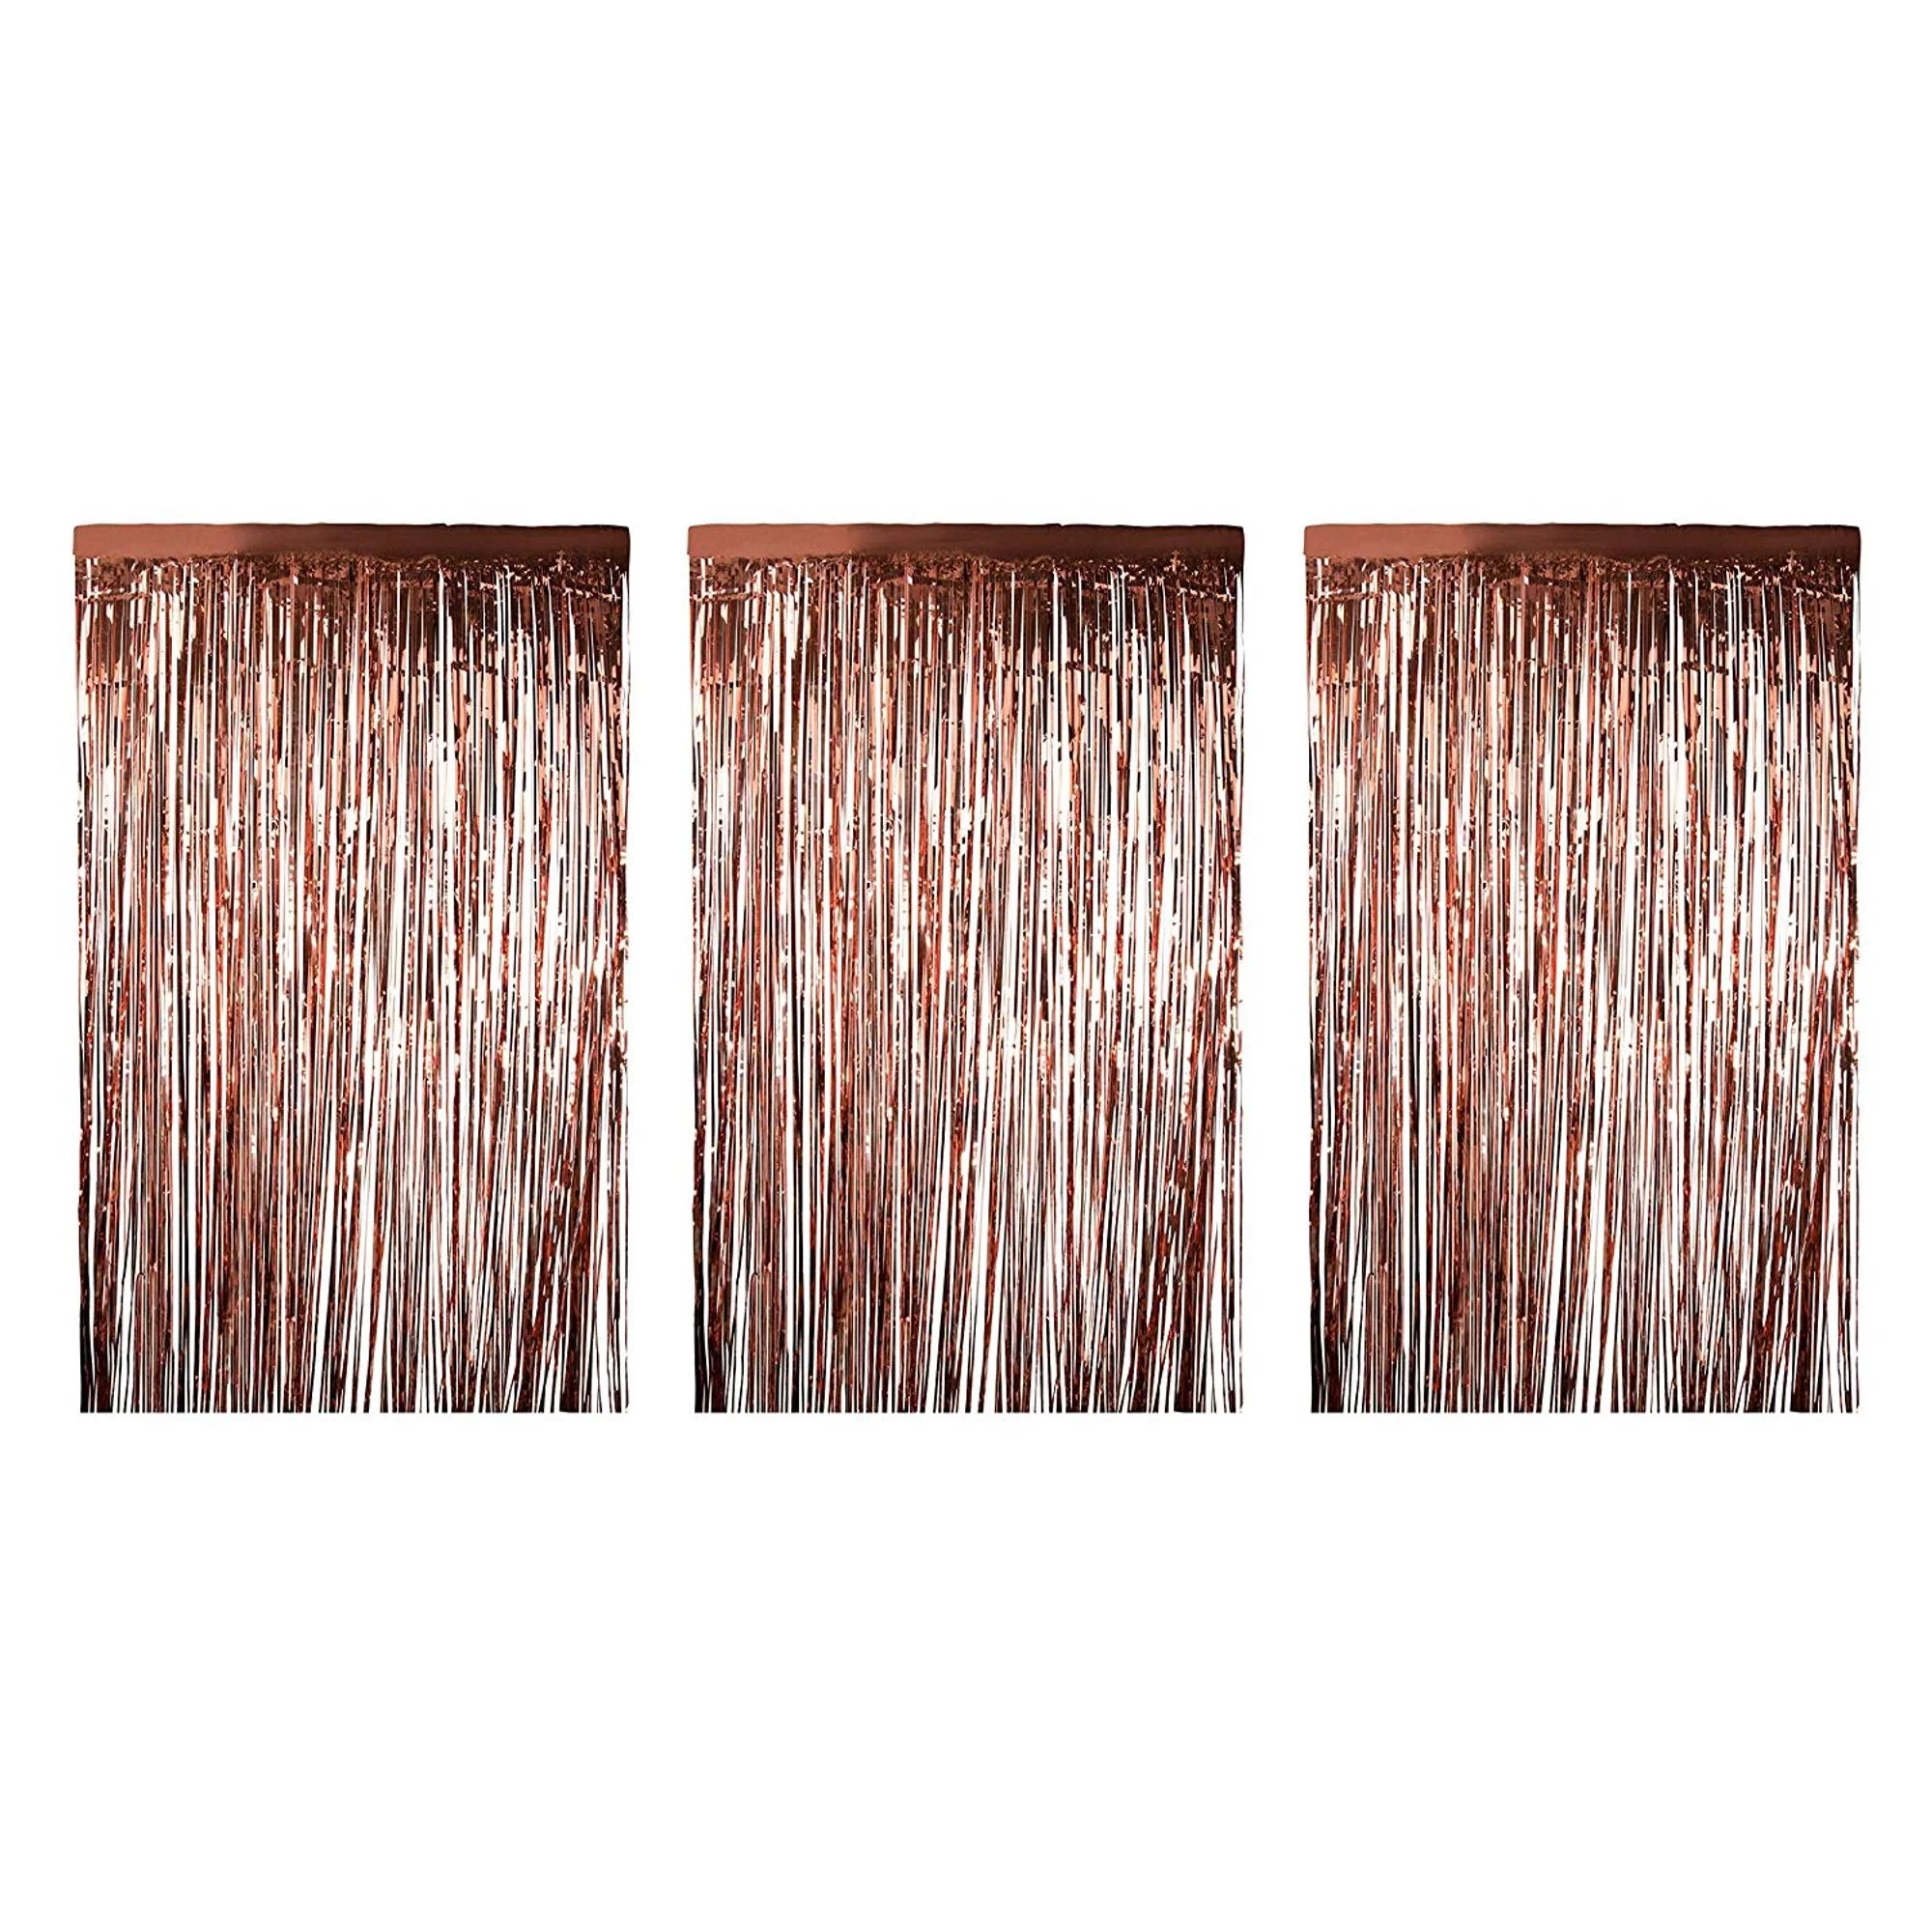 3 pack metallic foil fringe curtains 8 x 3 feet rose gold tinsel doorway curtain for wedding backdrop birthday party decorations photo booth